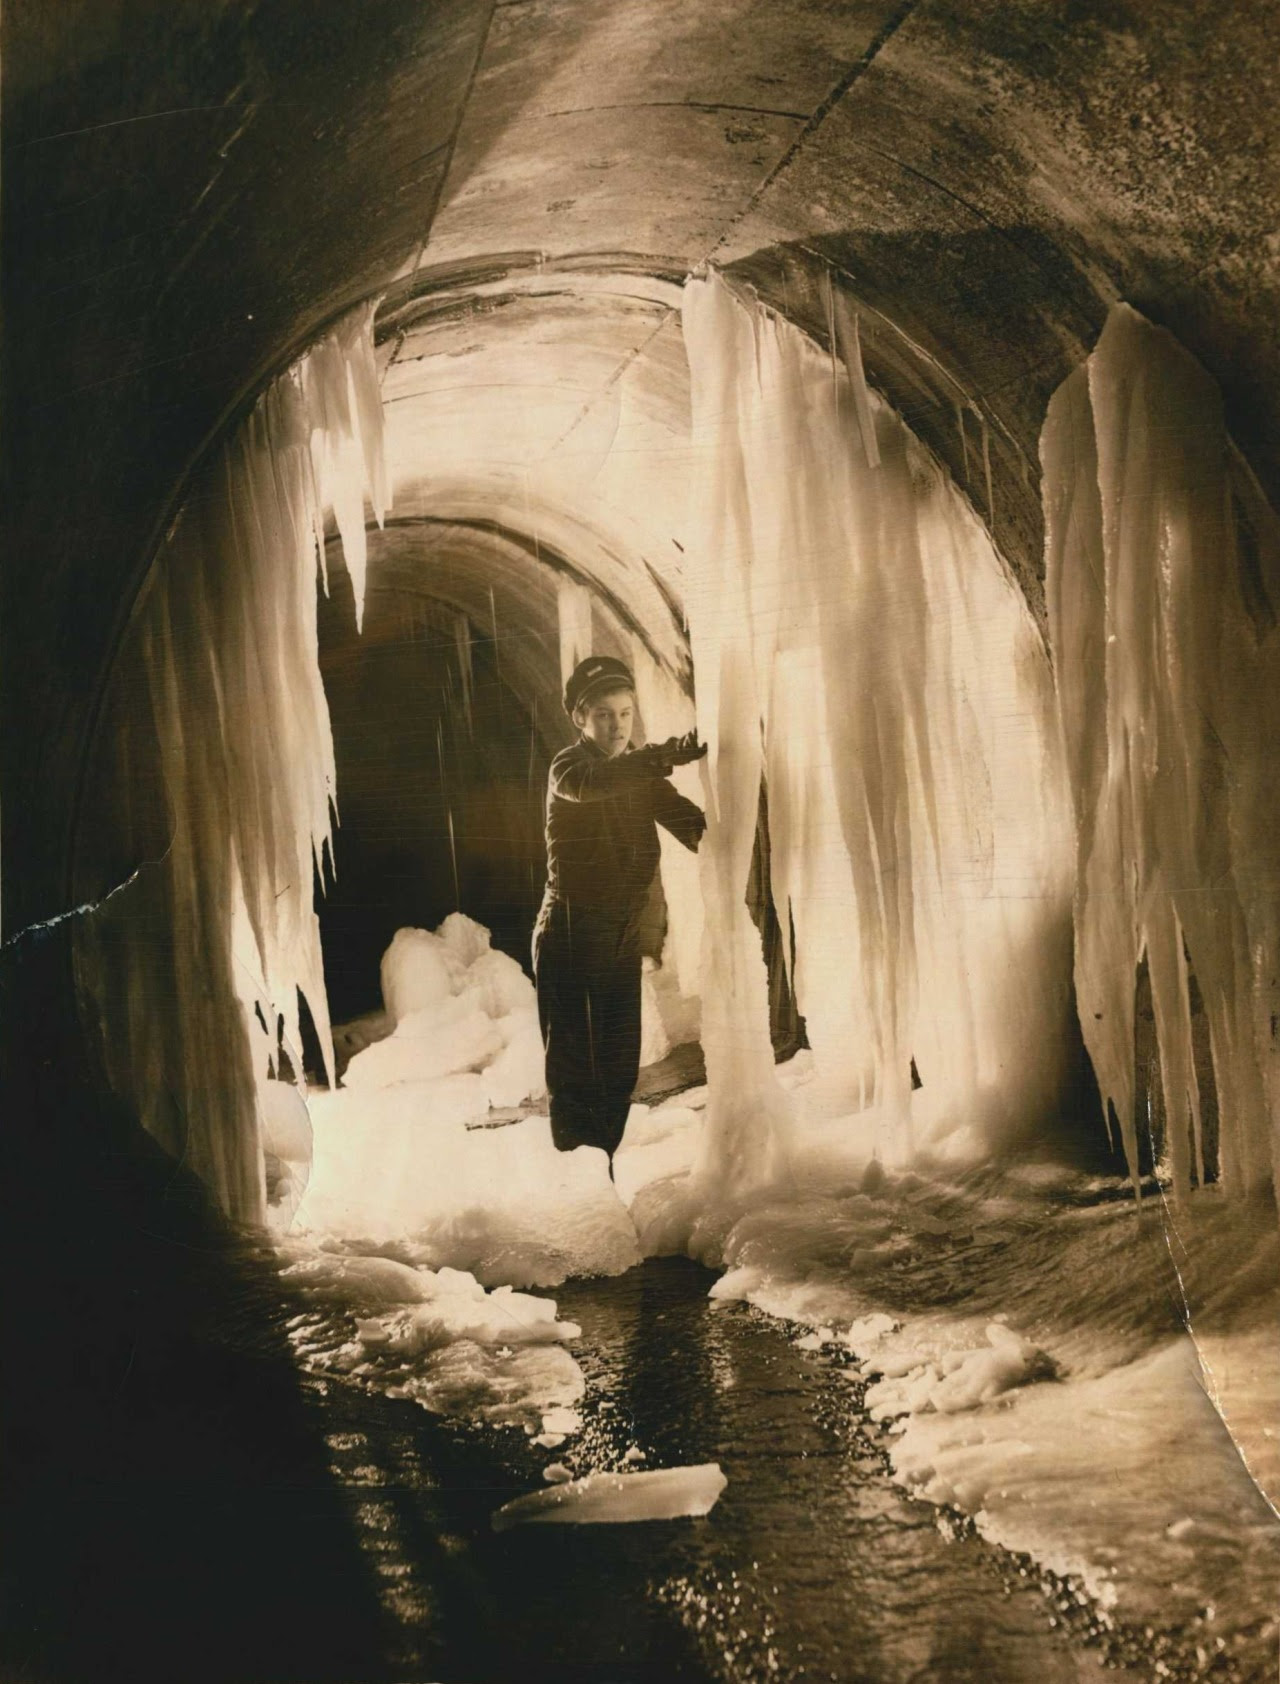 http://stuffaboutminneapolis.tumblr.com/post/135993657464/hclib-exploring-a-winter-wonderland-the-sewers